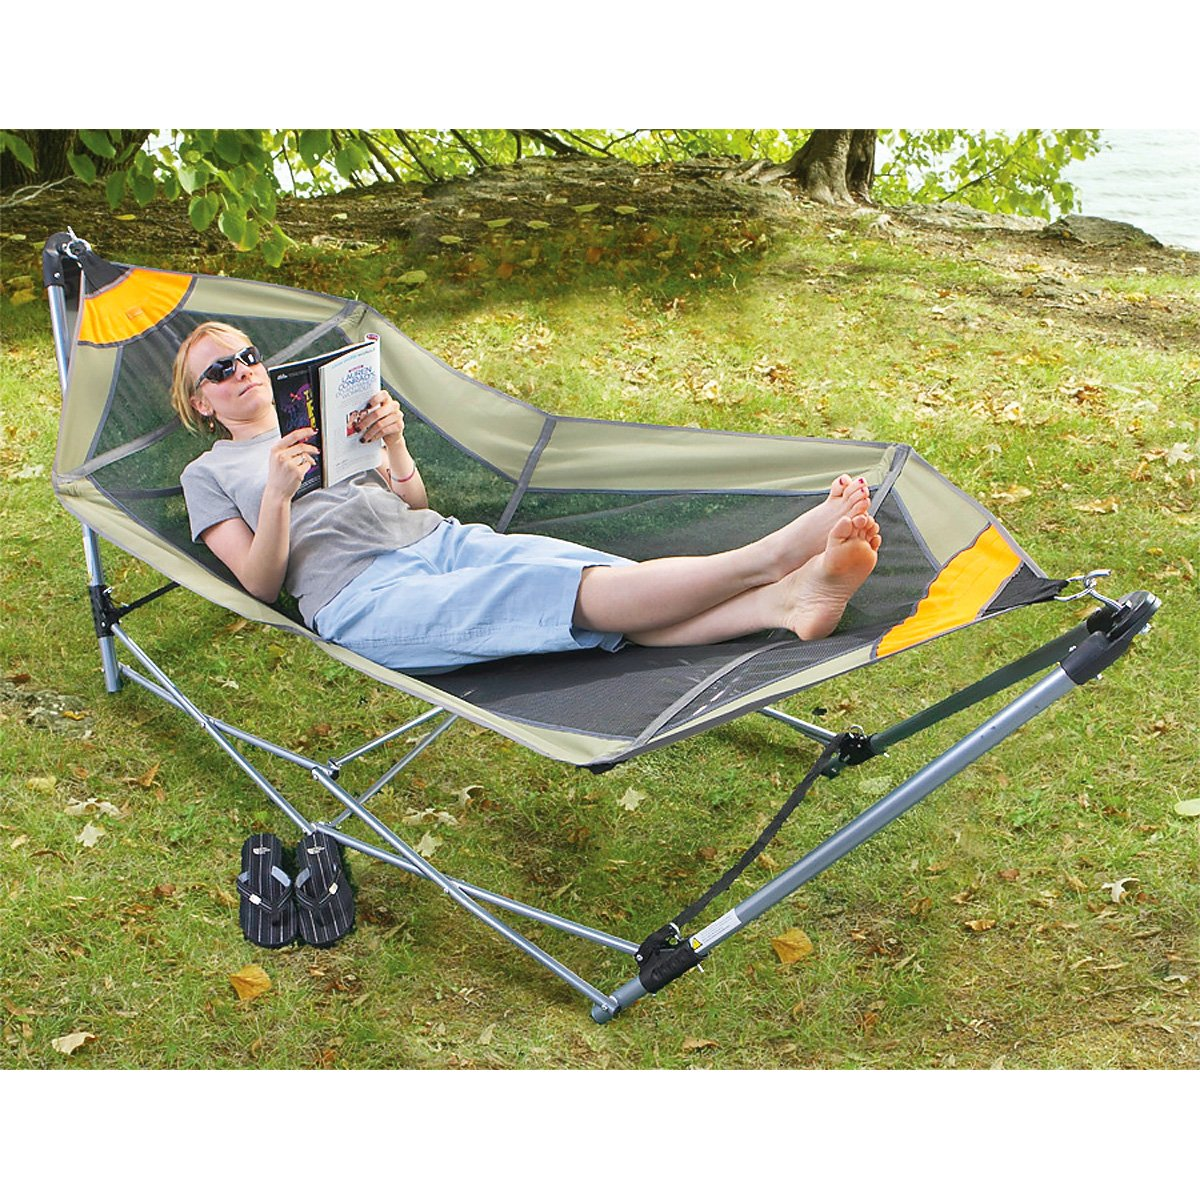 Portable Hammock Light Weight Outdoor Spa Relaxing Bed Reading Nature Camping